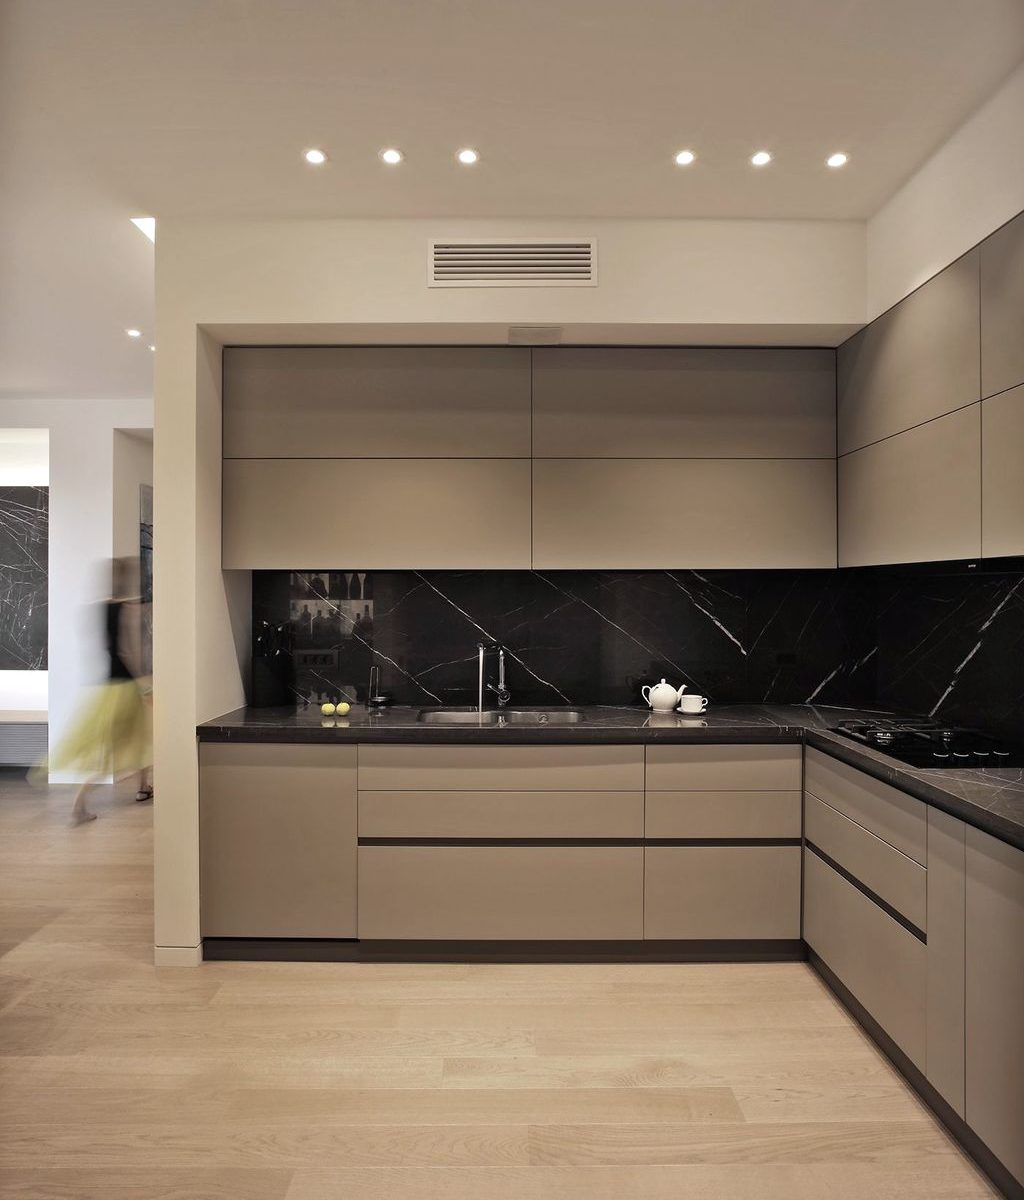 Admirable Luxury Kitchen Design Ideas You Will Love 30